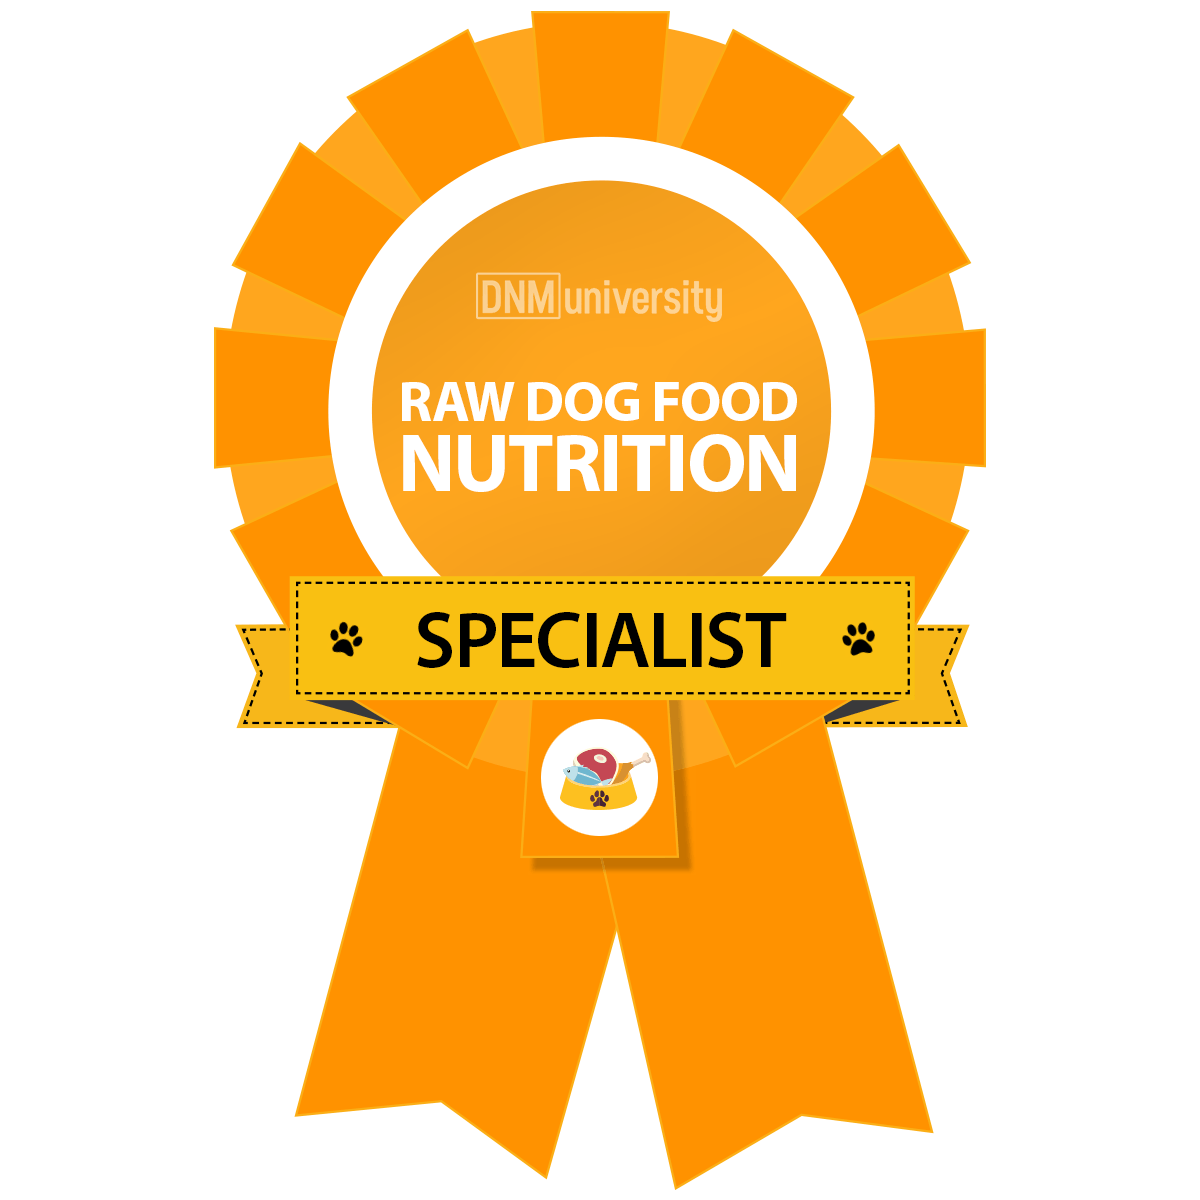 NEW-DNM-Raw-Dog-Food-Nutrition-Course